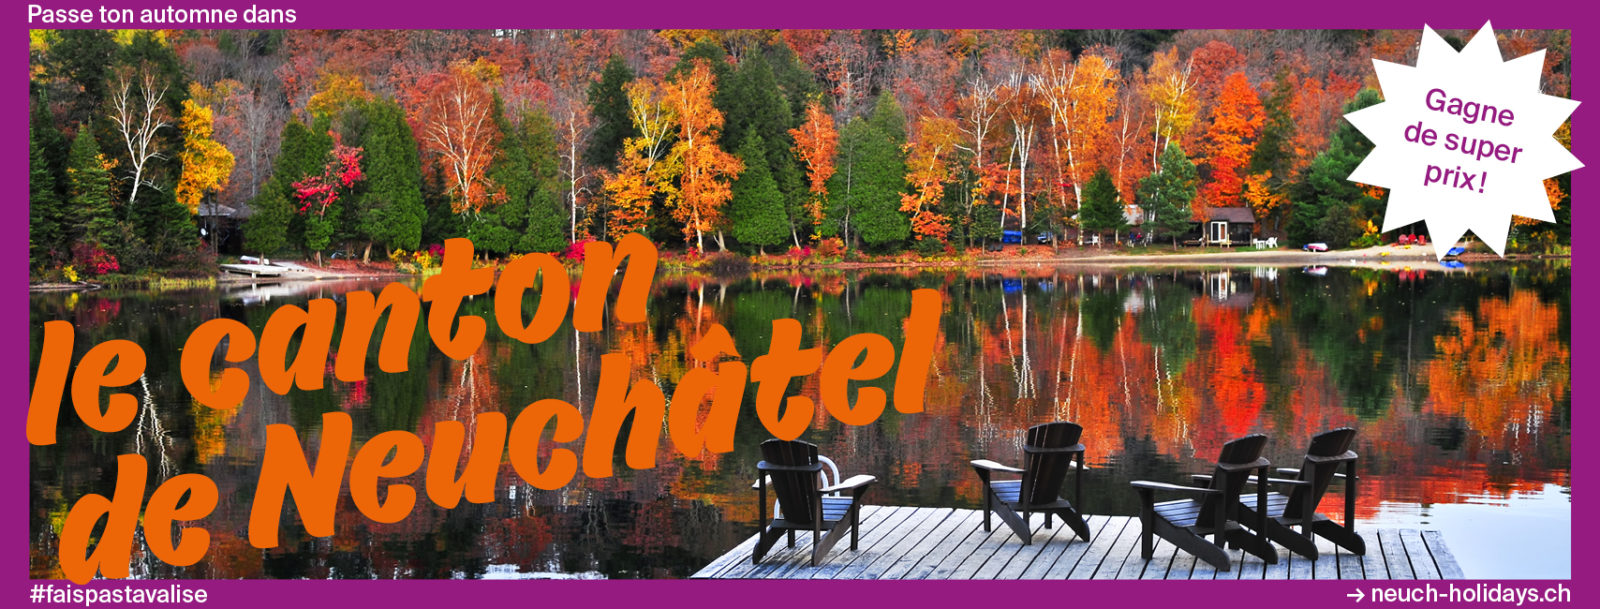 NEUCH_HOLIDAYS_COUVERTURE_FB_061020